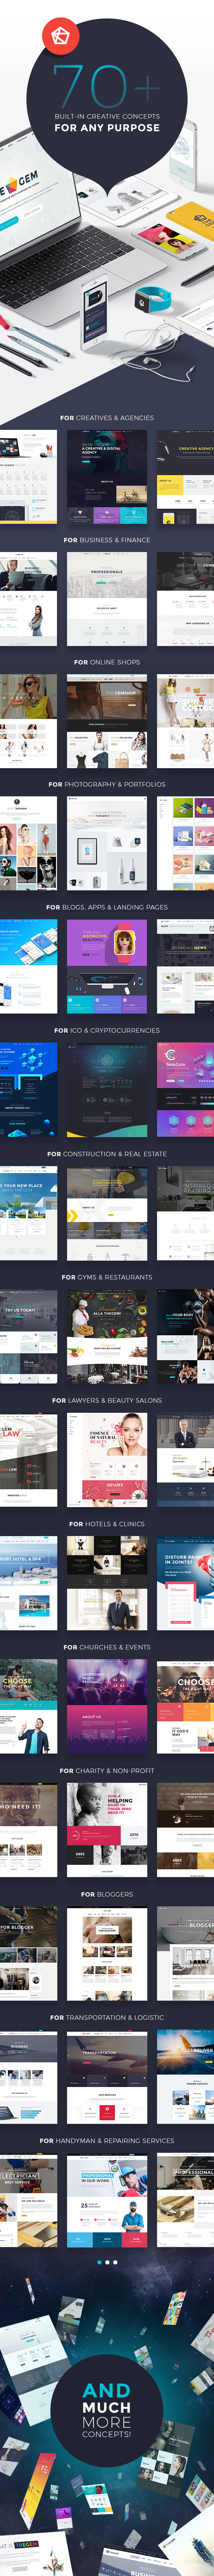 TheGem - Creative Multi-Purpose High-Performance WordPress Theme - 2